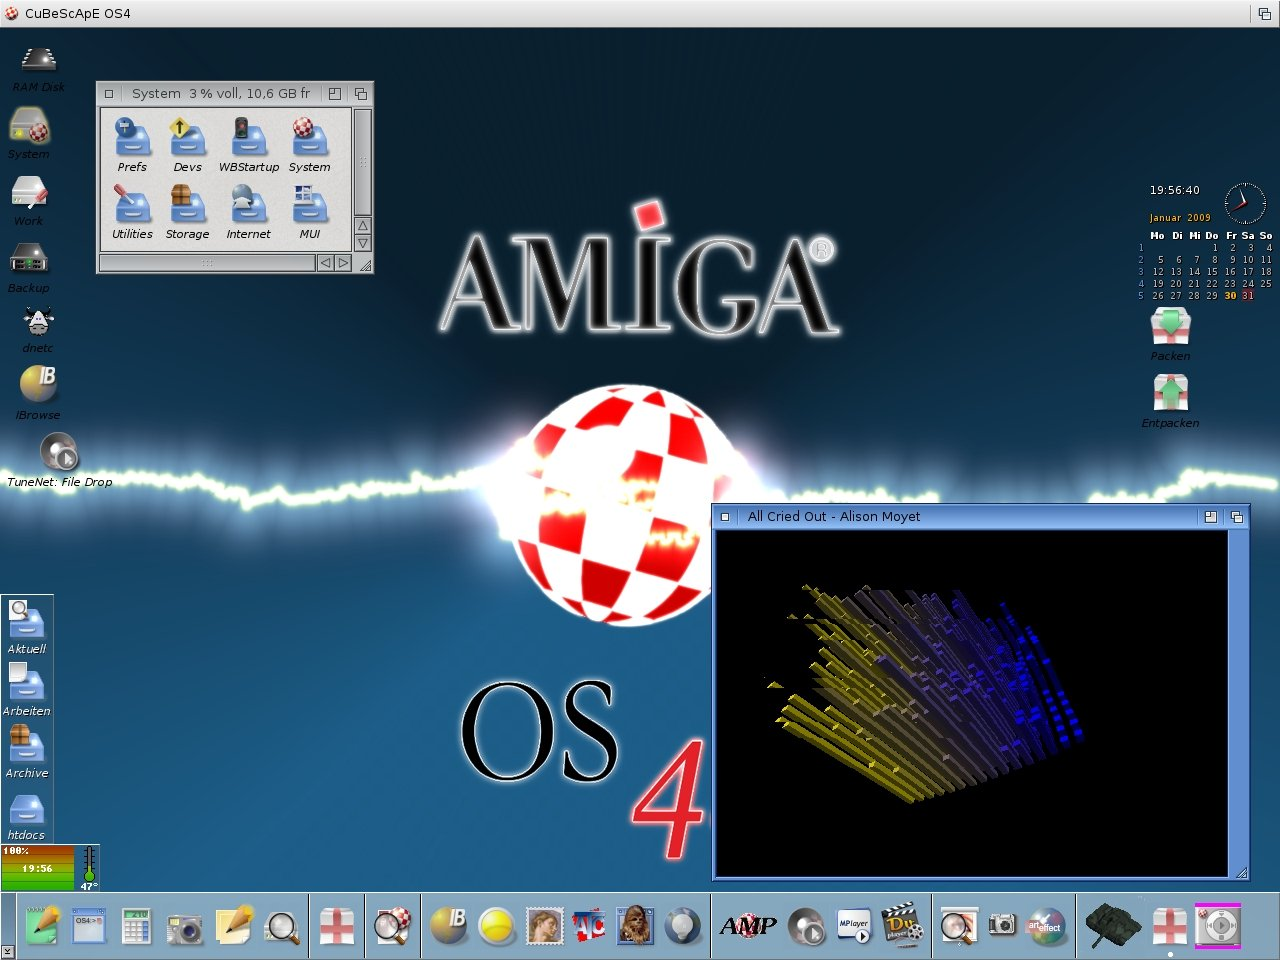 AmigaOS 4.1 Workbench 2009